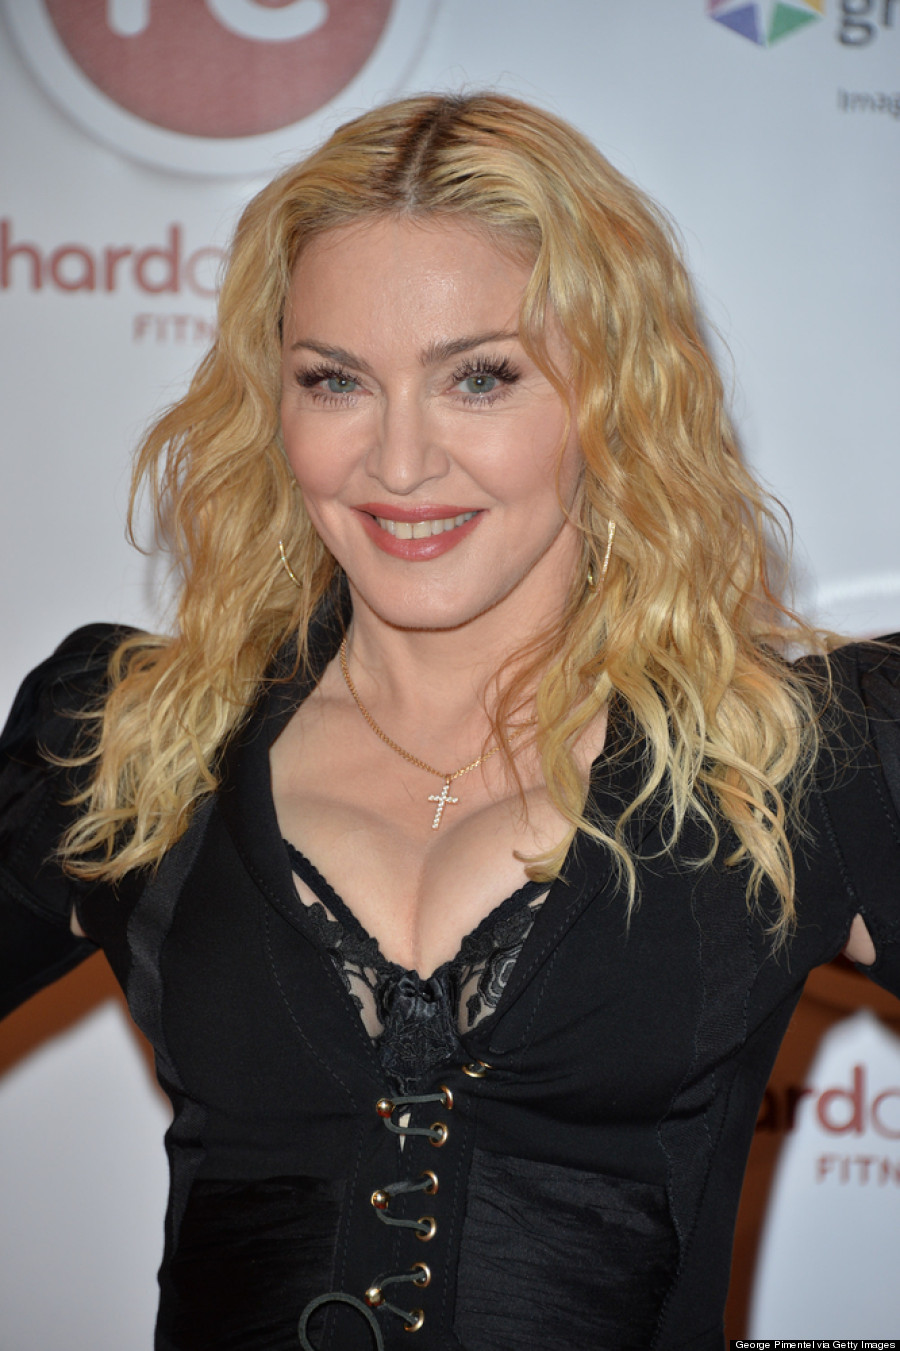 Madonna Shows Off Her Sexy Side At Hard Candy Gym Toronto Opening ...